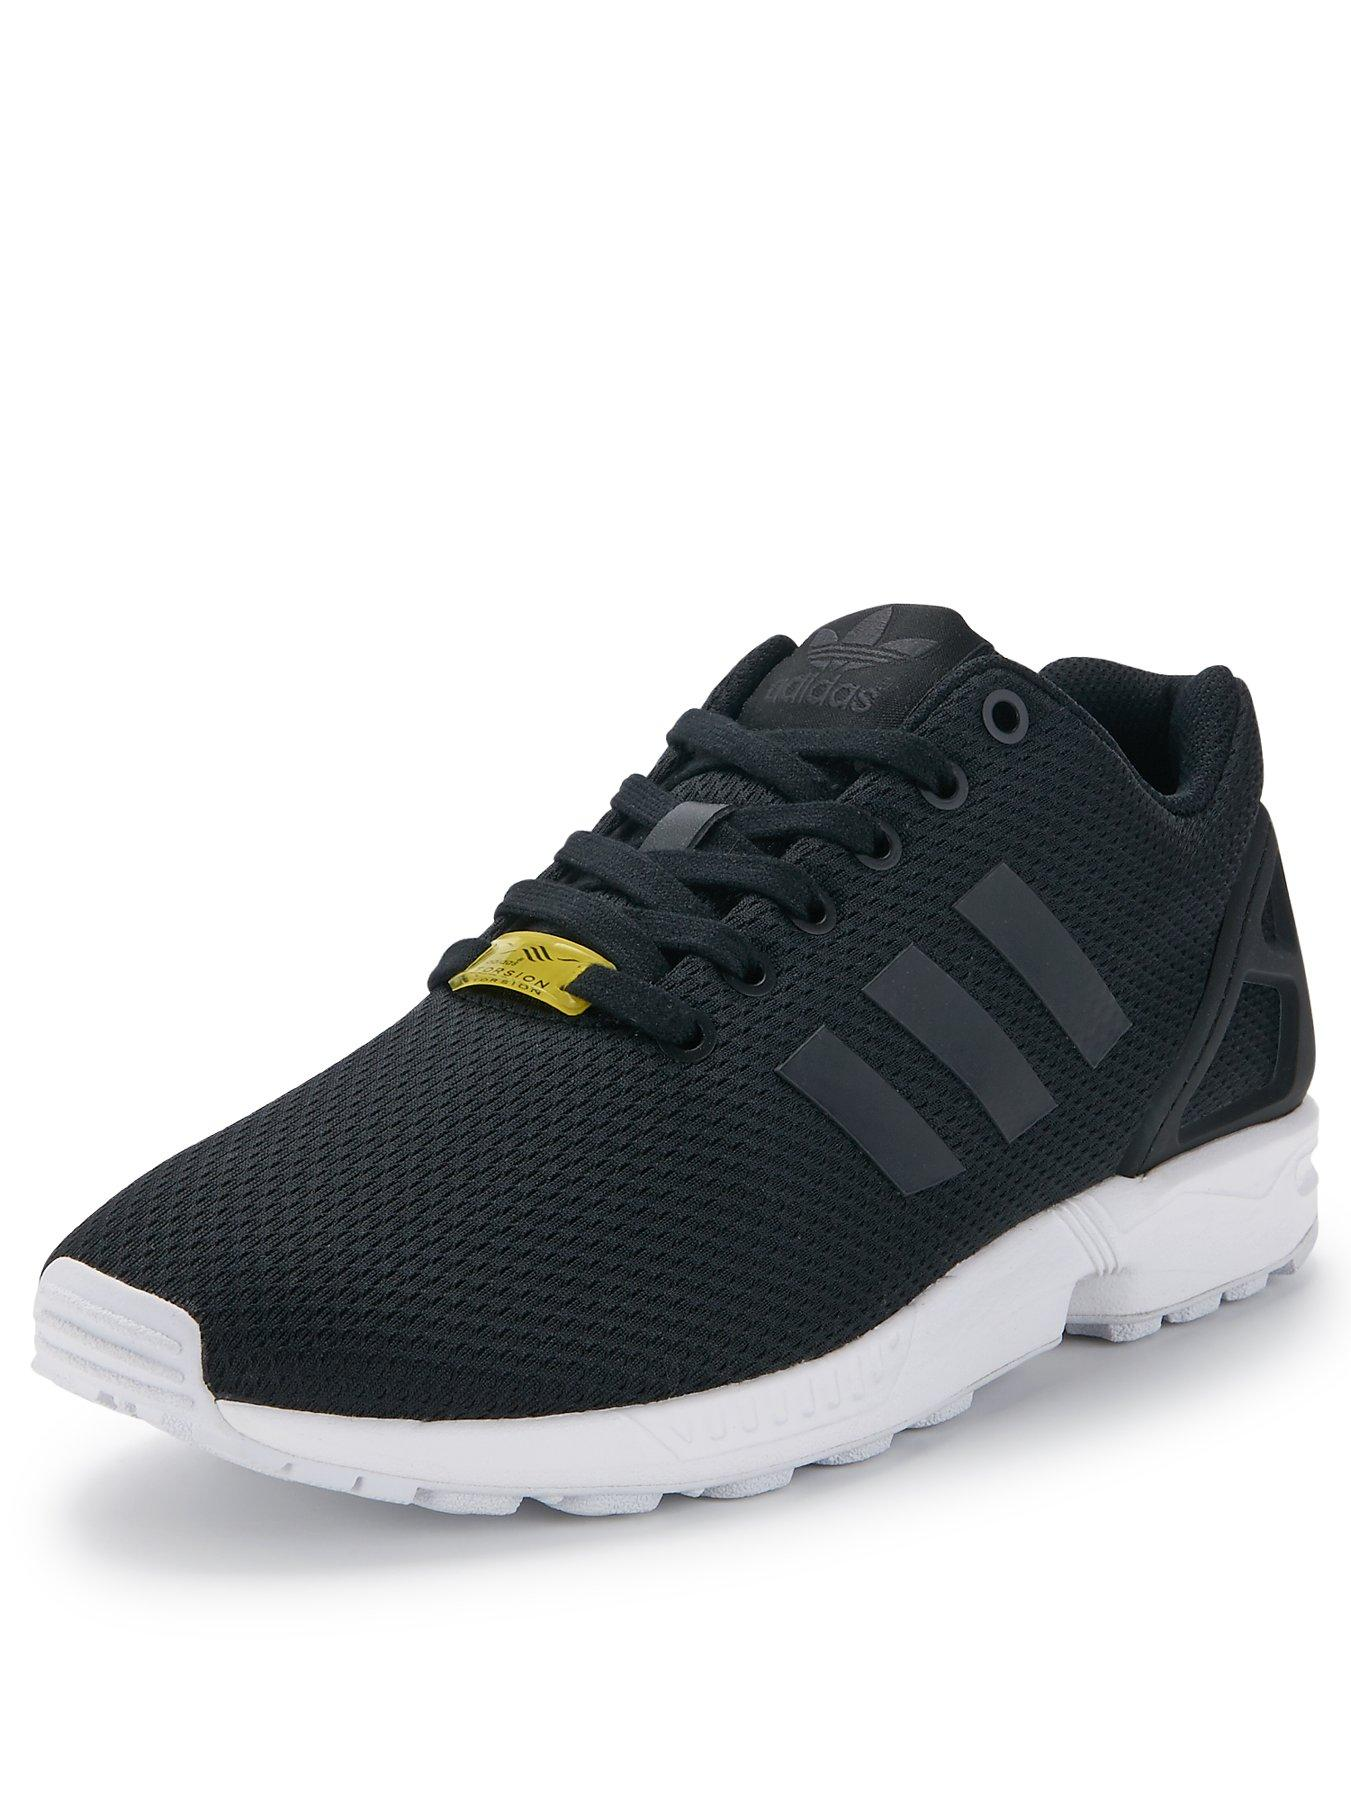 best website 302ee 470e0 ... promo code for adidas originals zx flux mens trainers littlewoods 5a26b  8256a